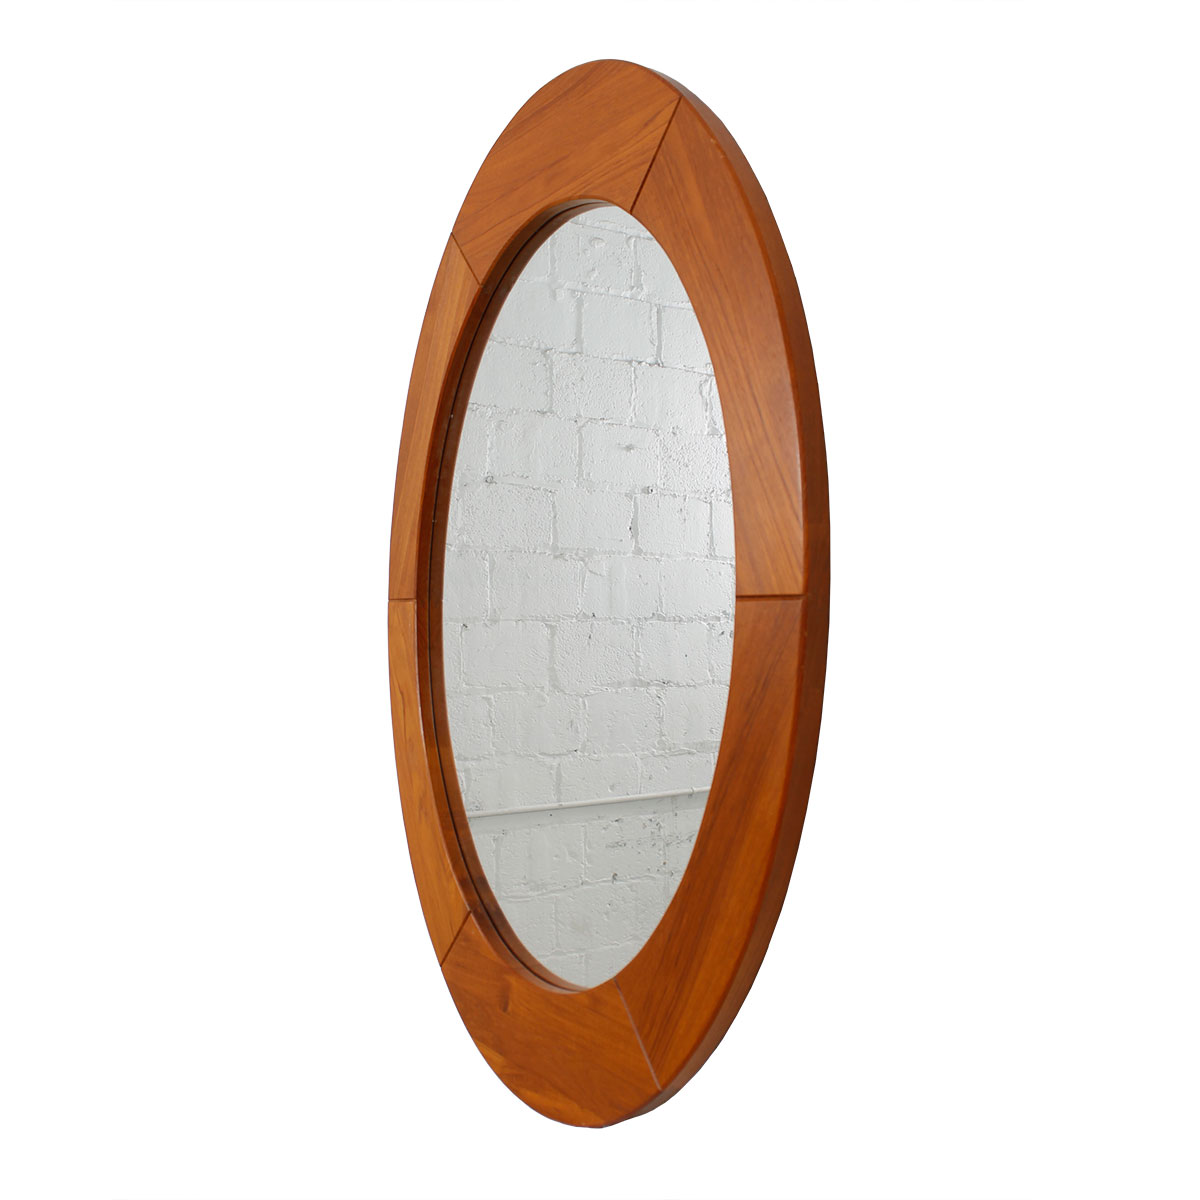 Large Oval Danish Modern Teak Mirror